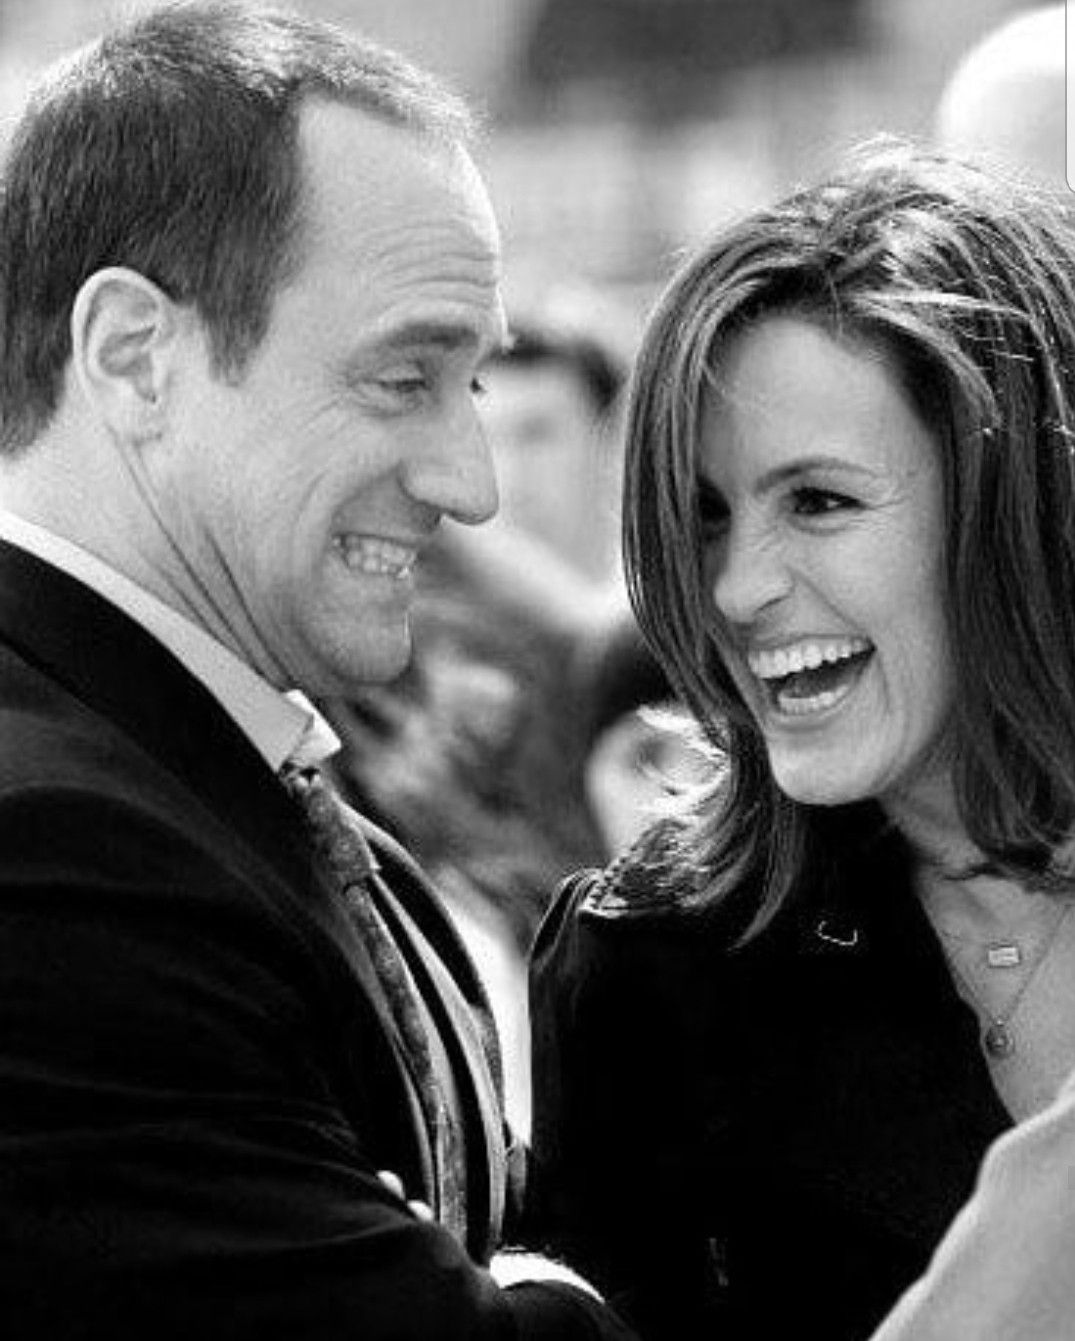 do detective benson and stabler ever hook up